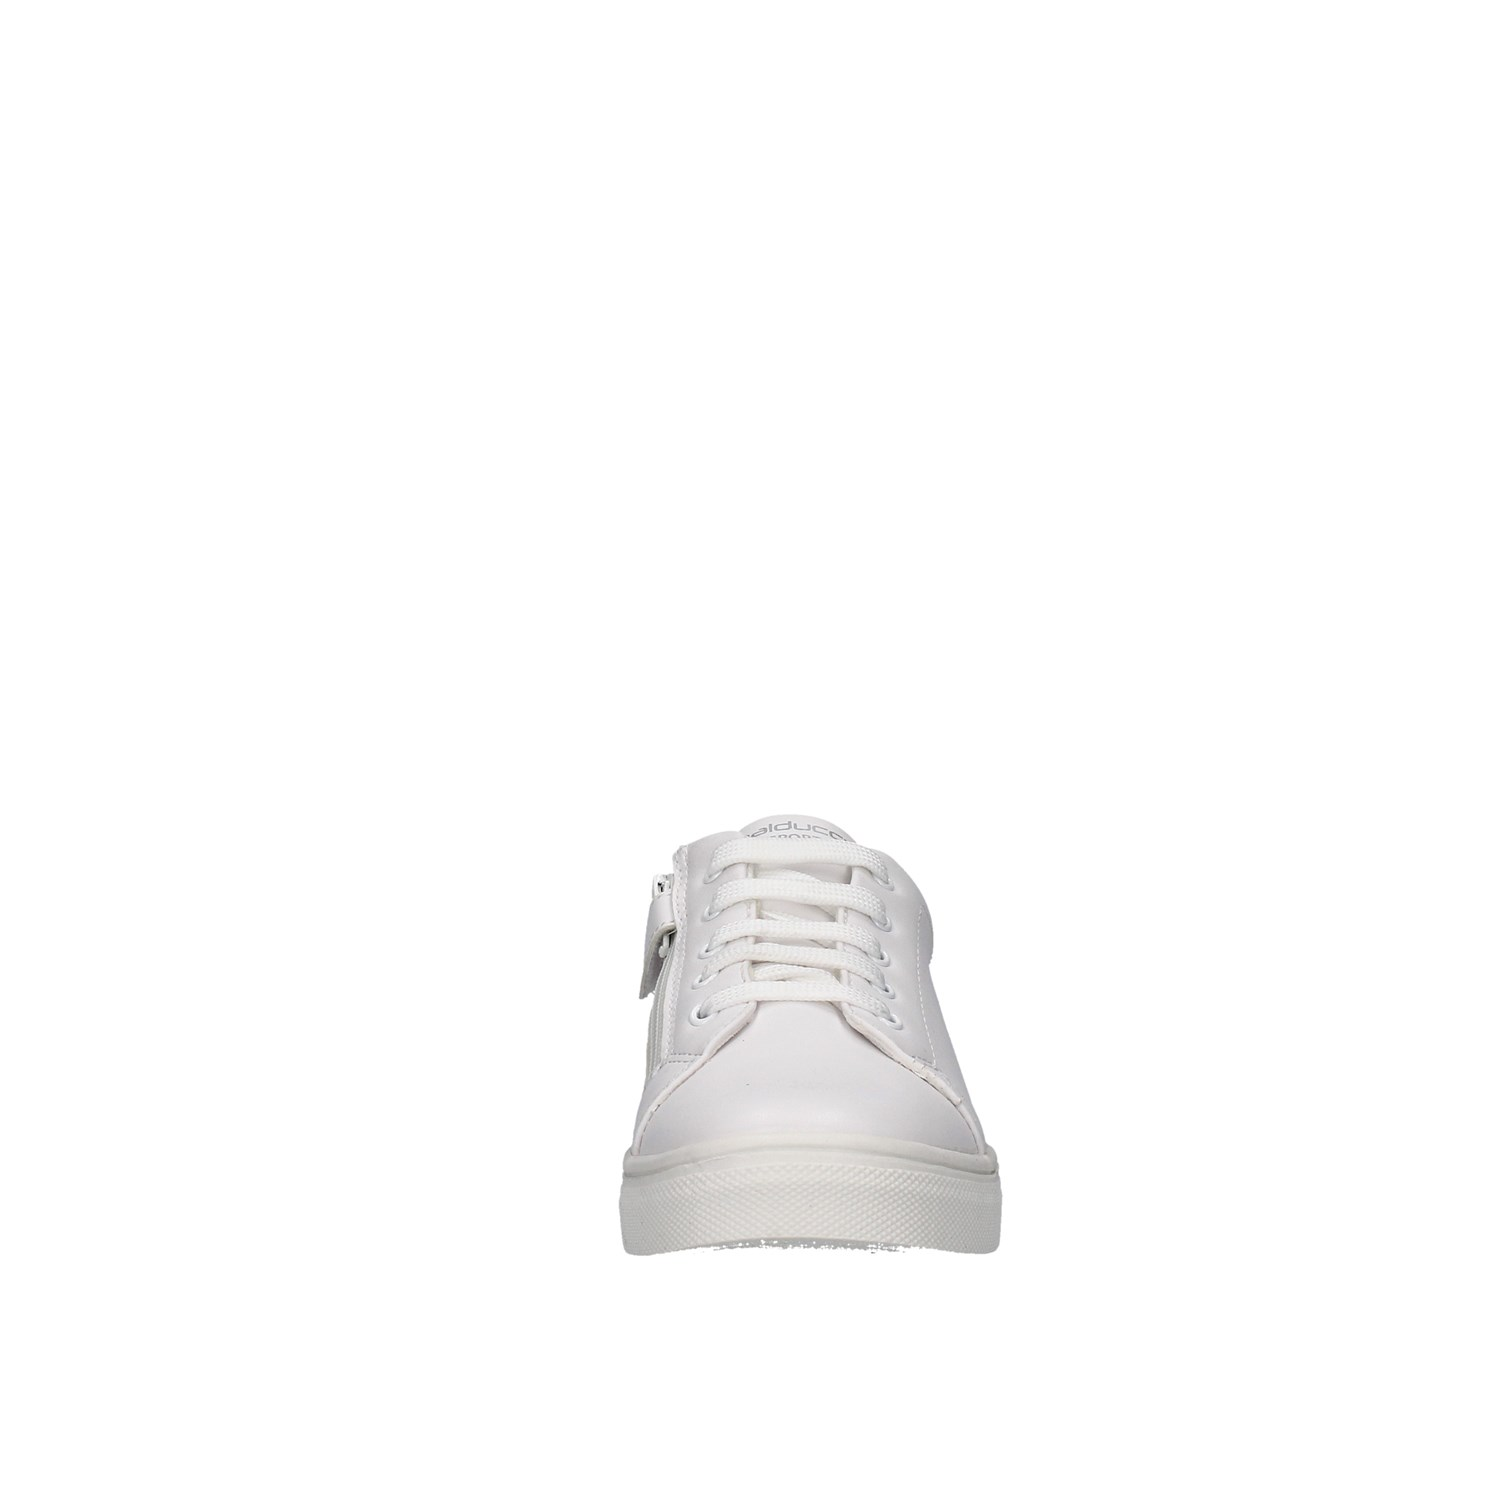 Balducci Shoes Child Laced WHITE BS521